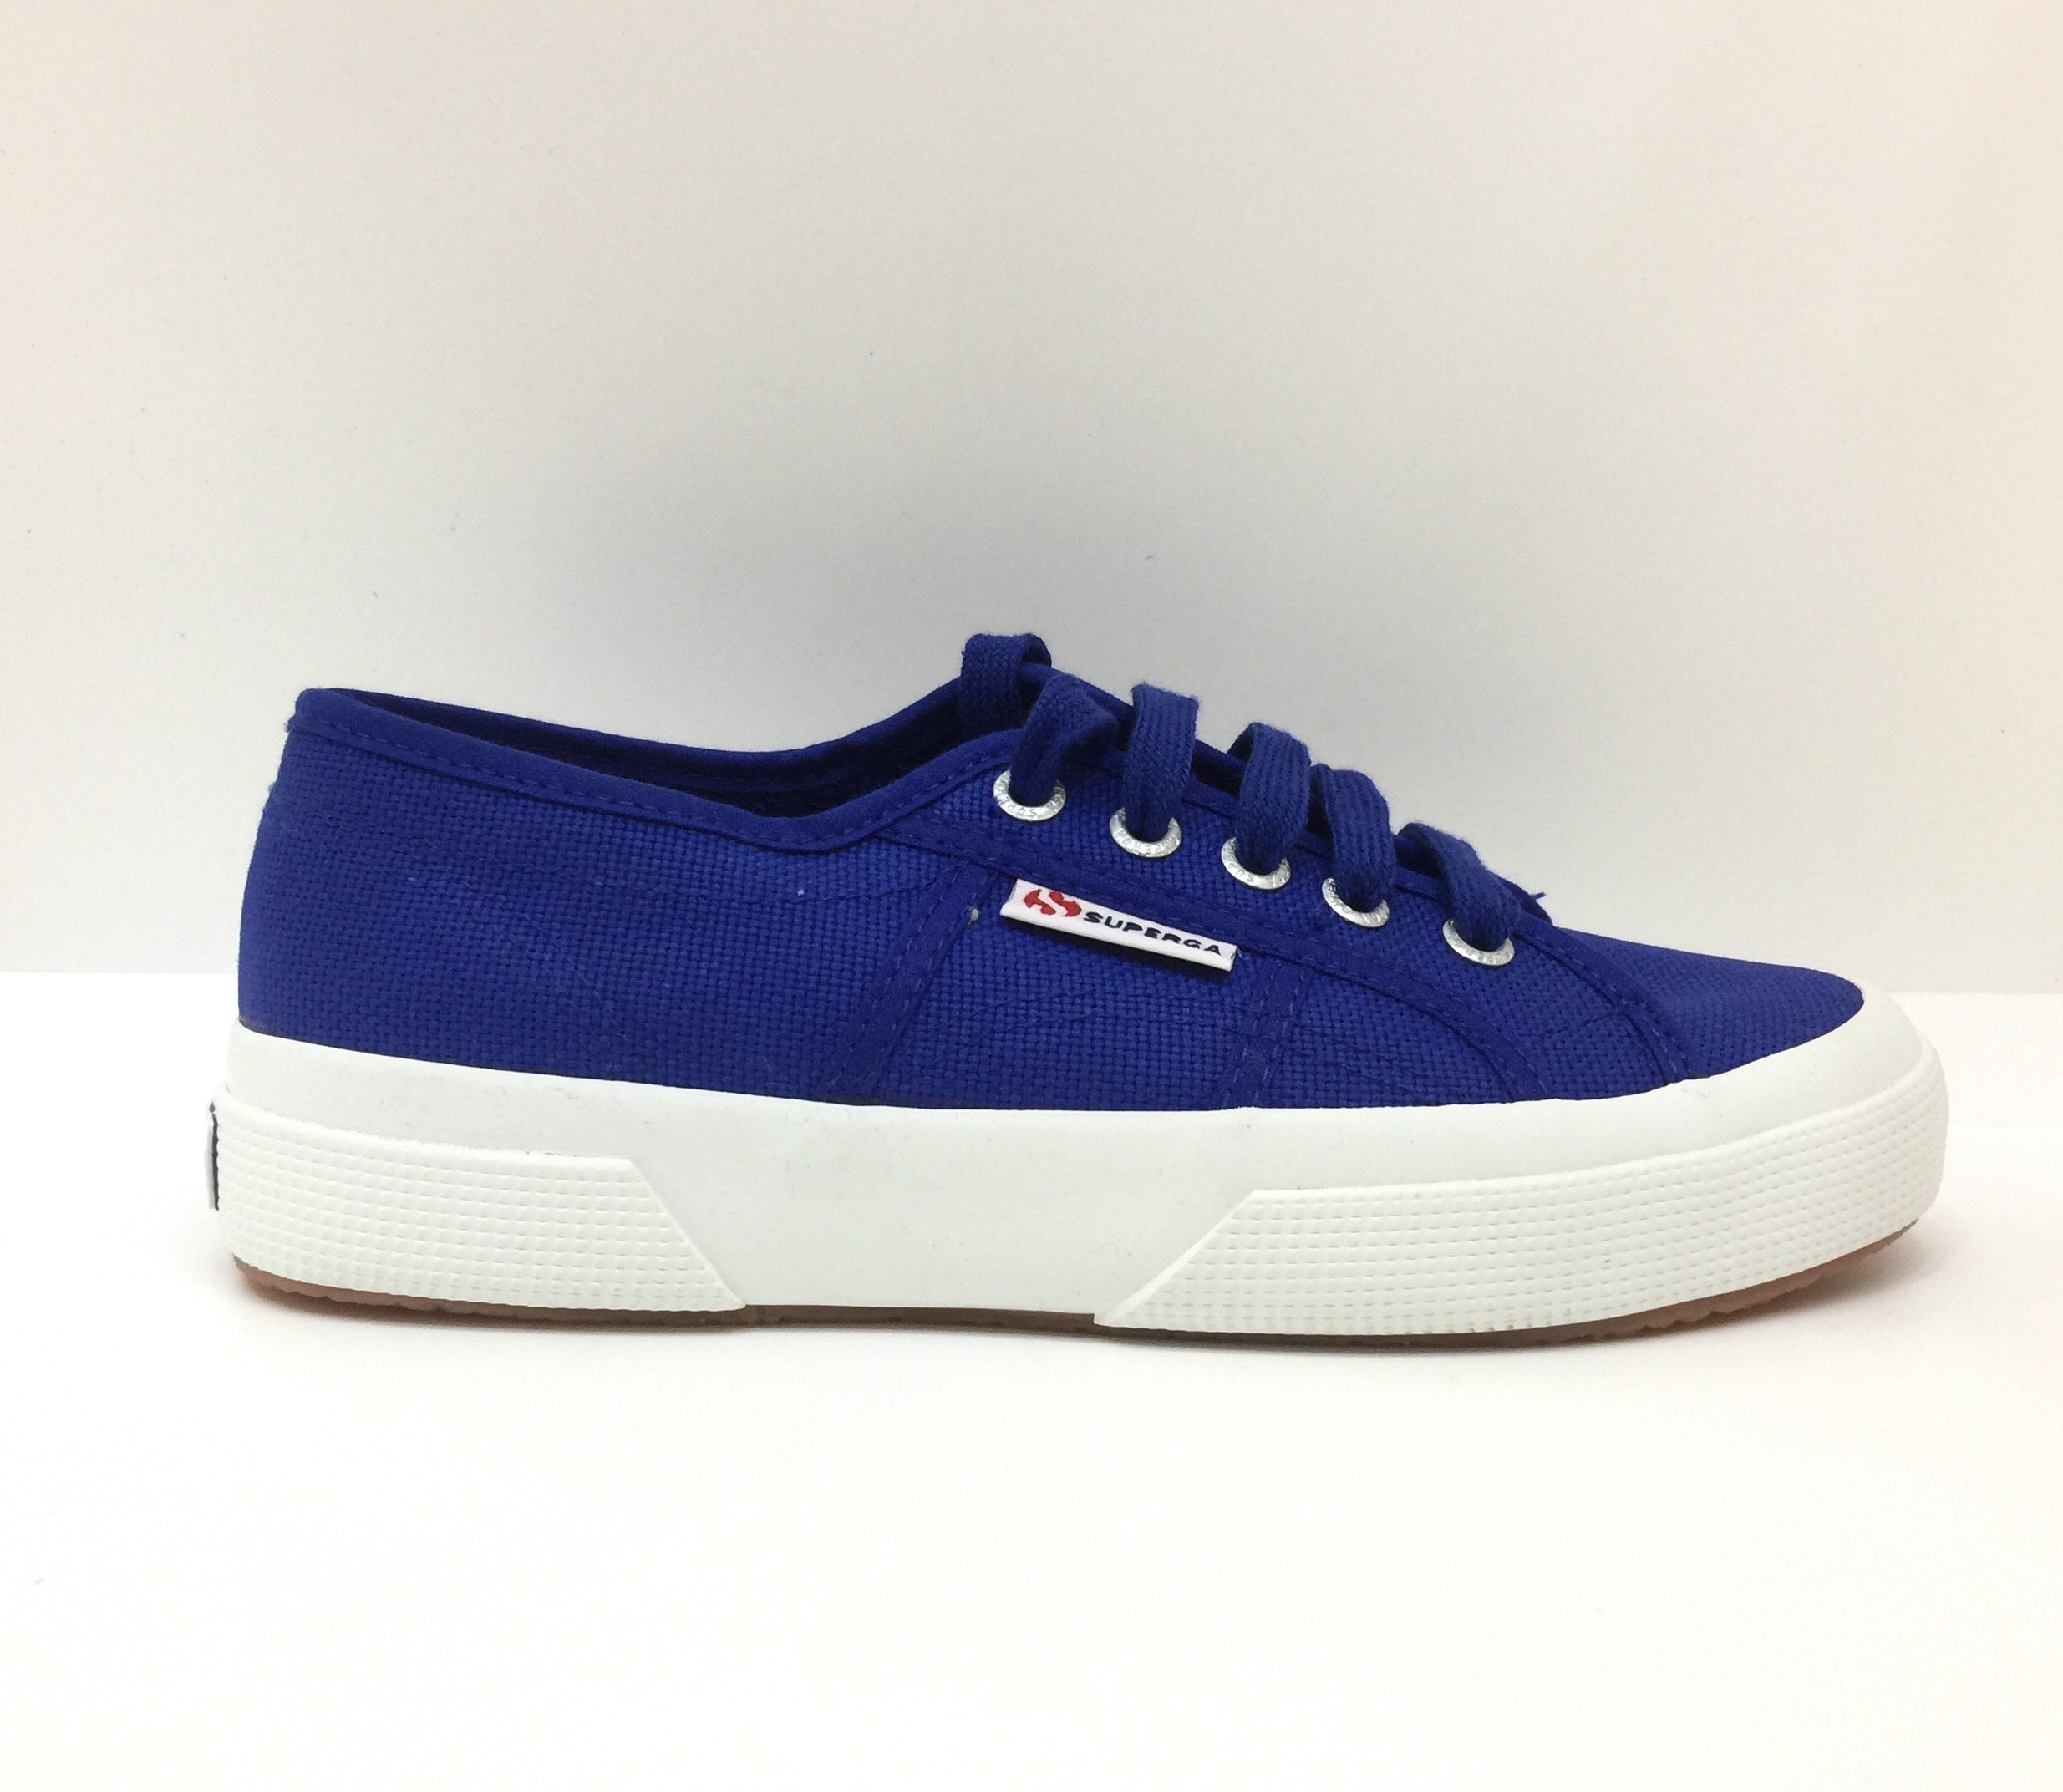 Superga 2750 Cotu Classic Sneakers Unisex Adulto Blu Intense Blue N4R